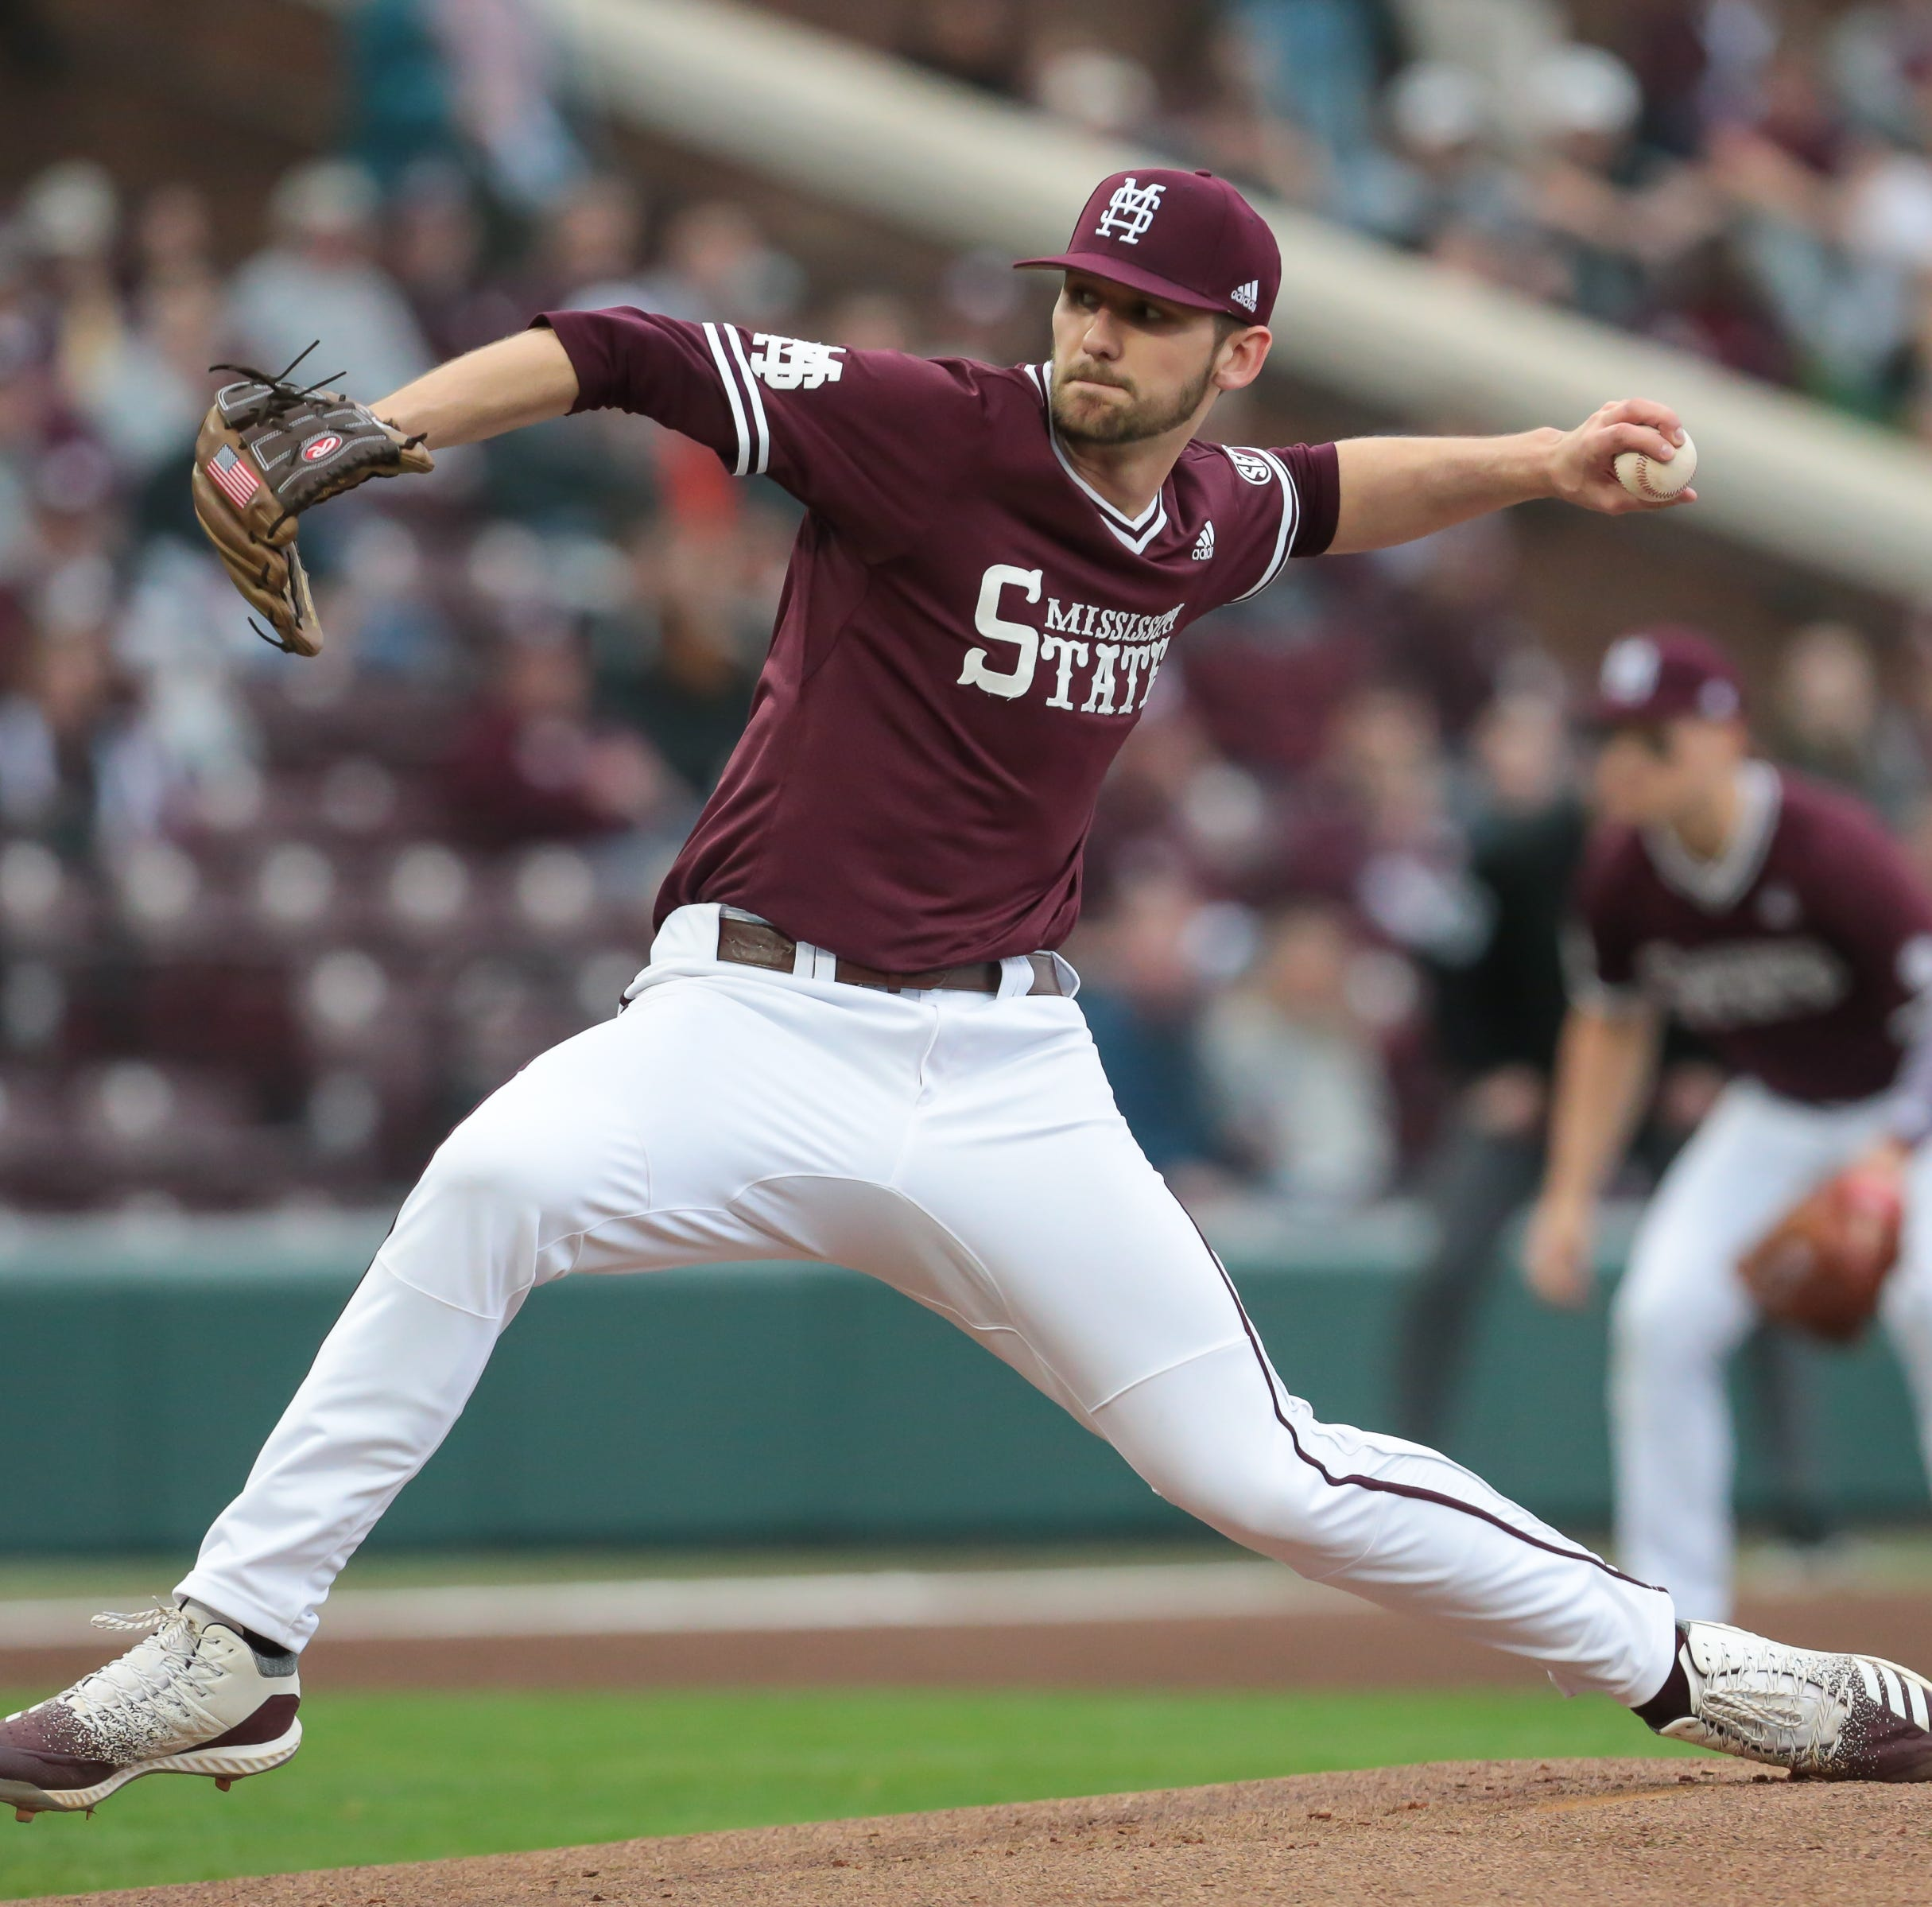 Three strikes: Takeaways from Mississippi State's loss to Southern Miss